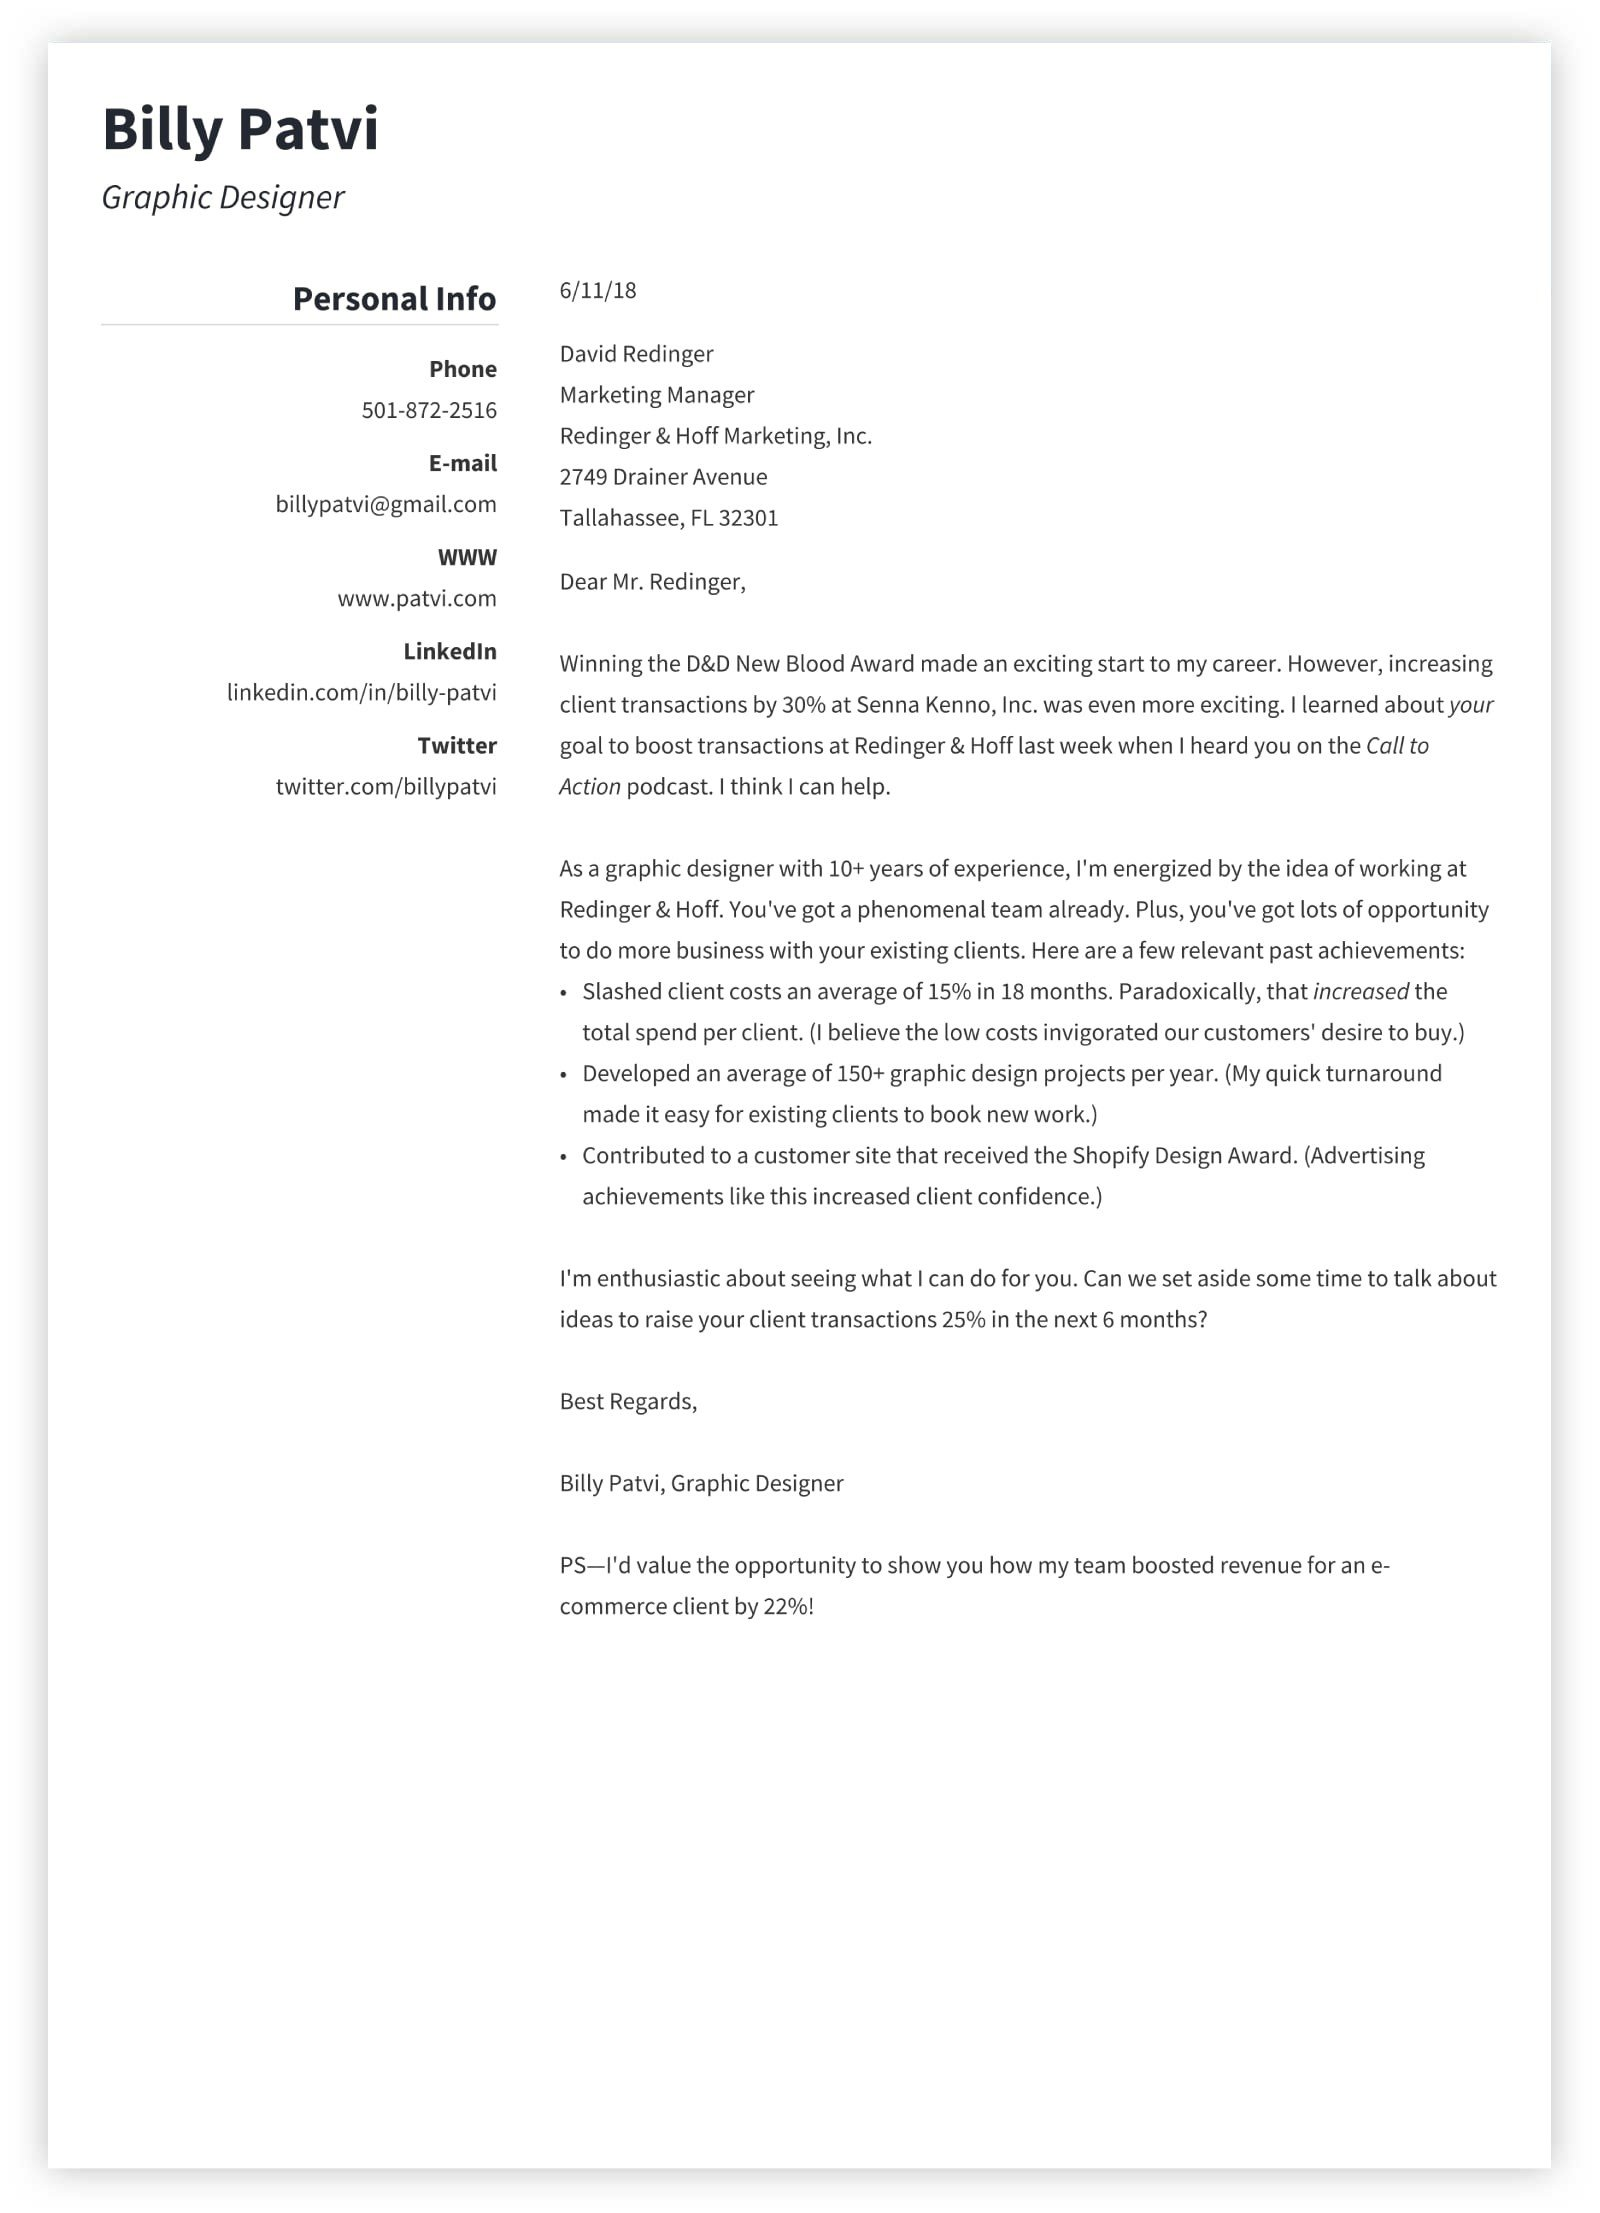 Application Letter For A Job Vacancy, Graphic Design Cover Letter, Application Letter For A Job Vacancy